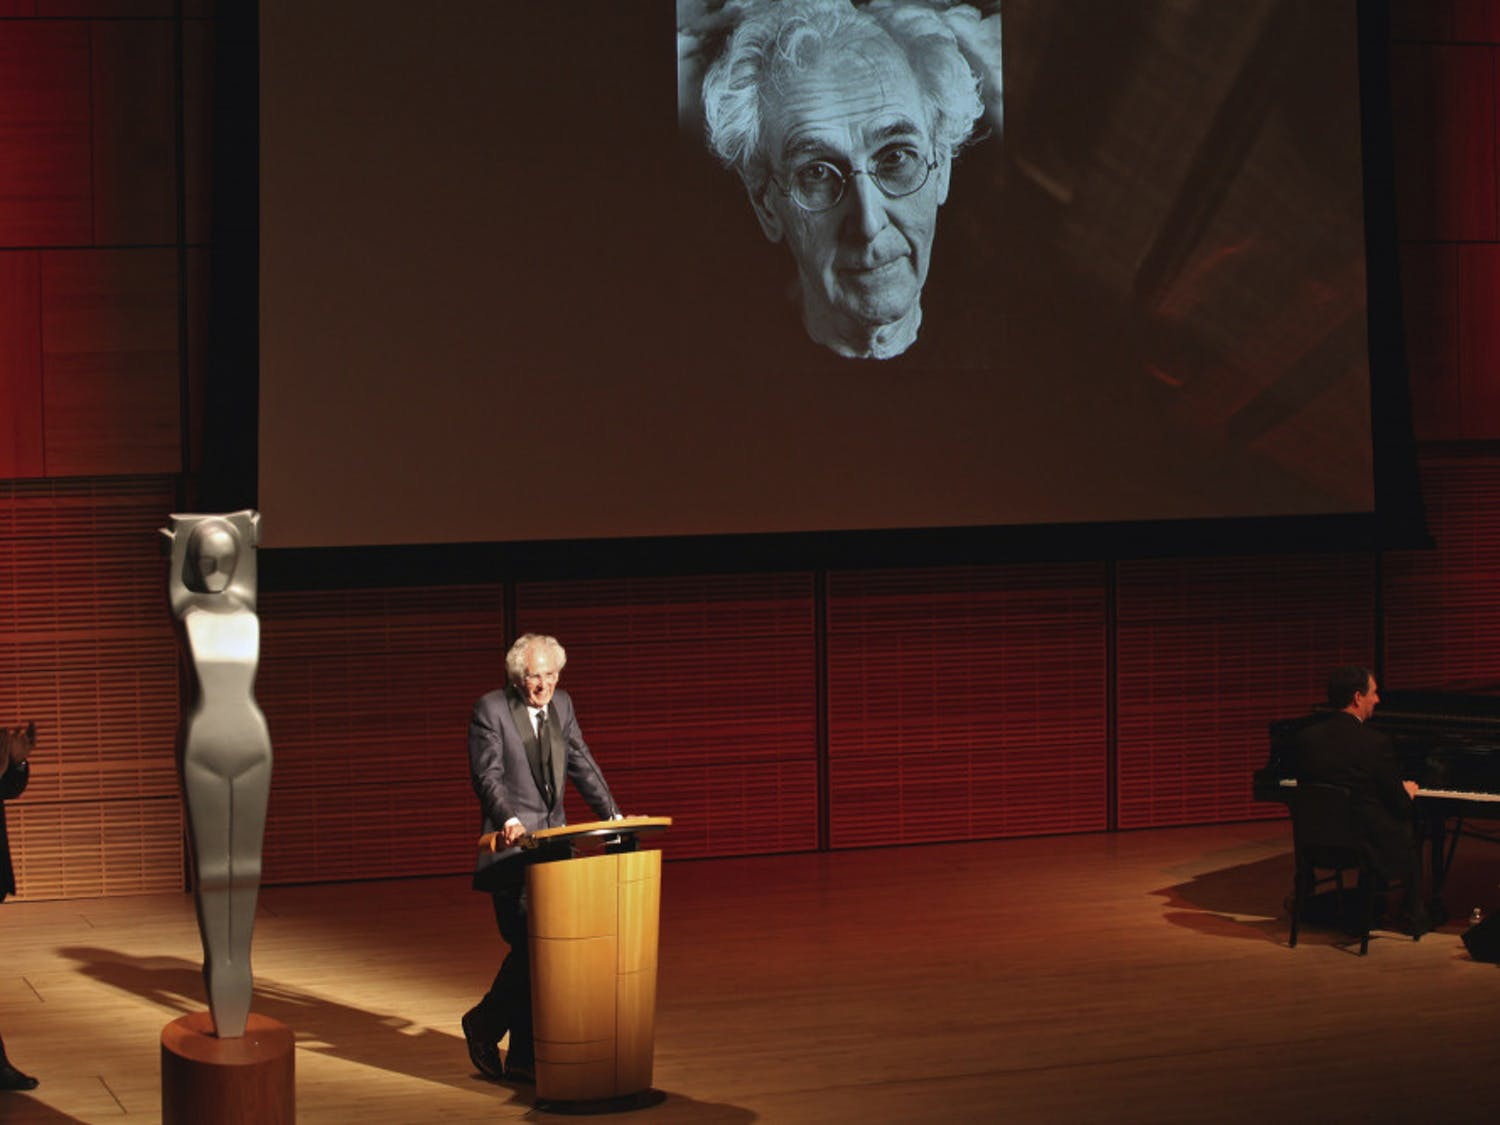 Professor emeritus Jerry N. Uelsmann accepts the Lucie Award at Carnegie Hall in New York City.